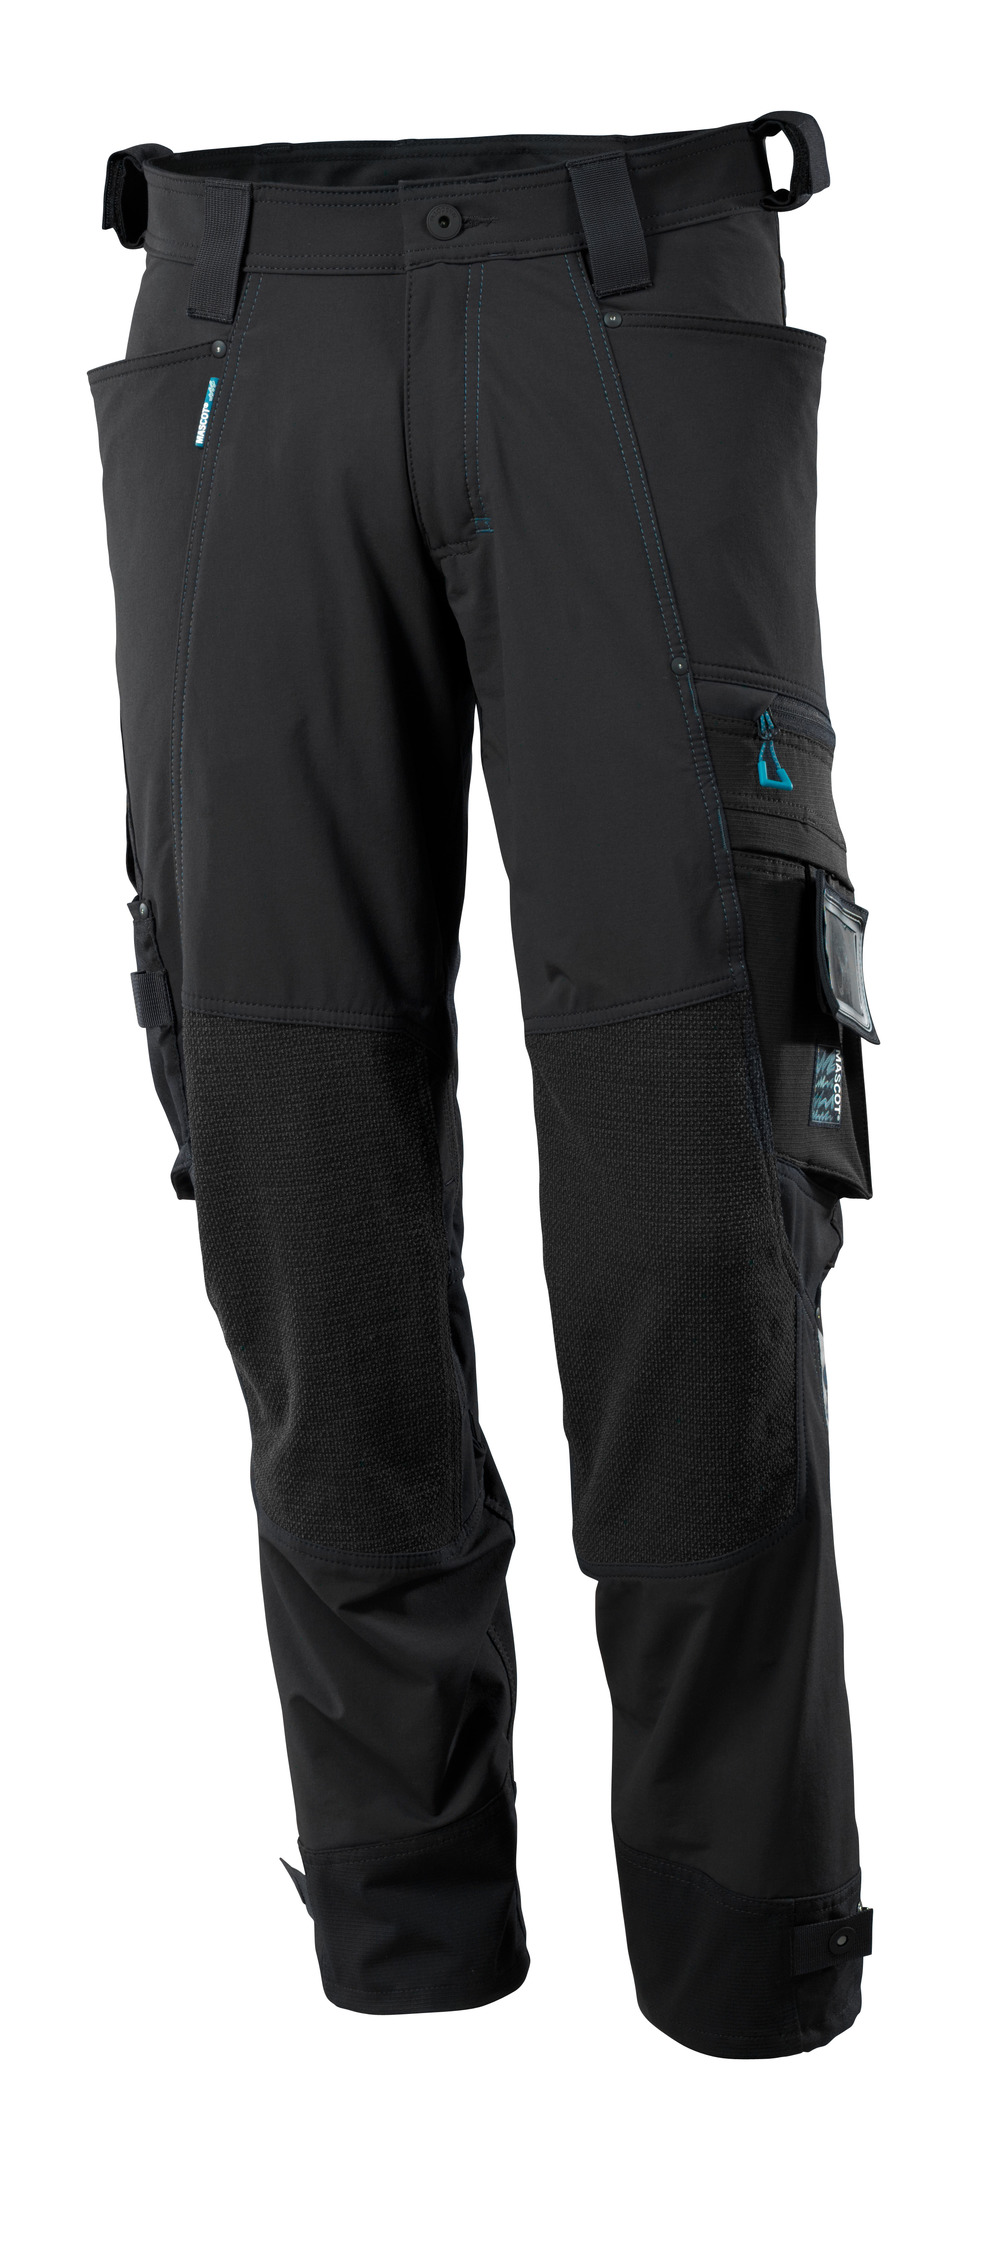 MASCOT Advanced Trousers with Dyneema Kneepad Pockets